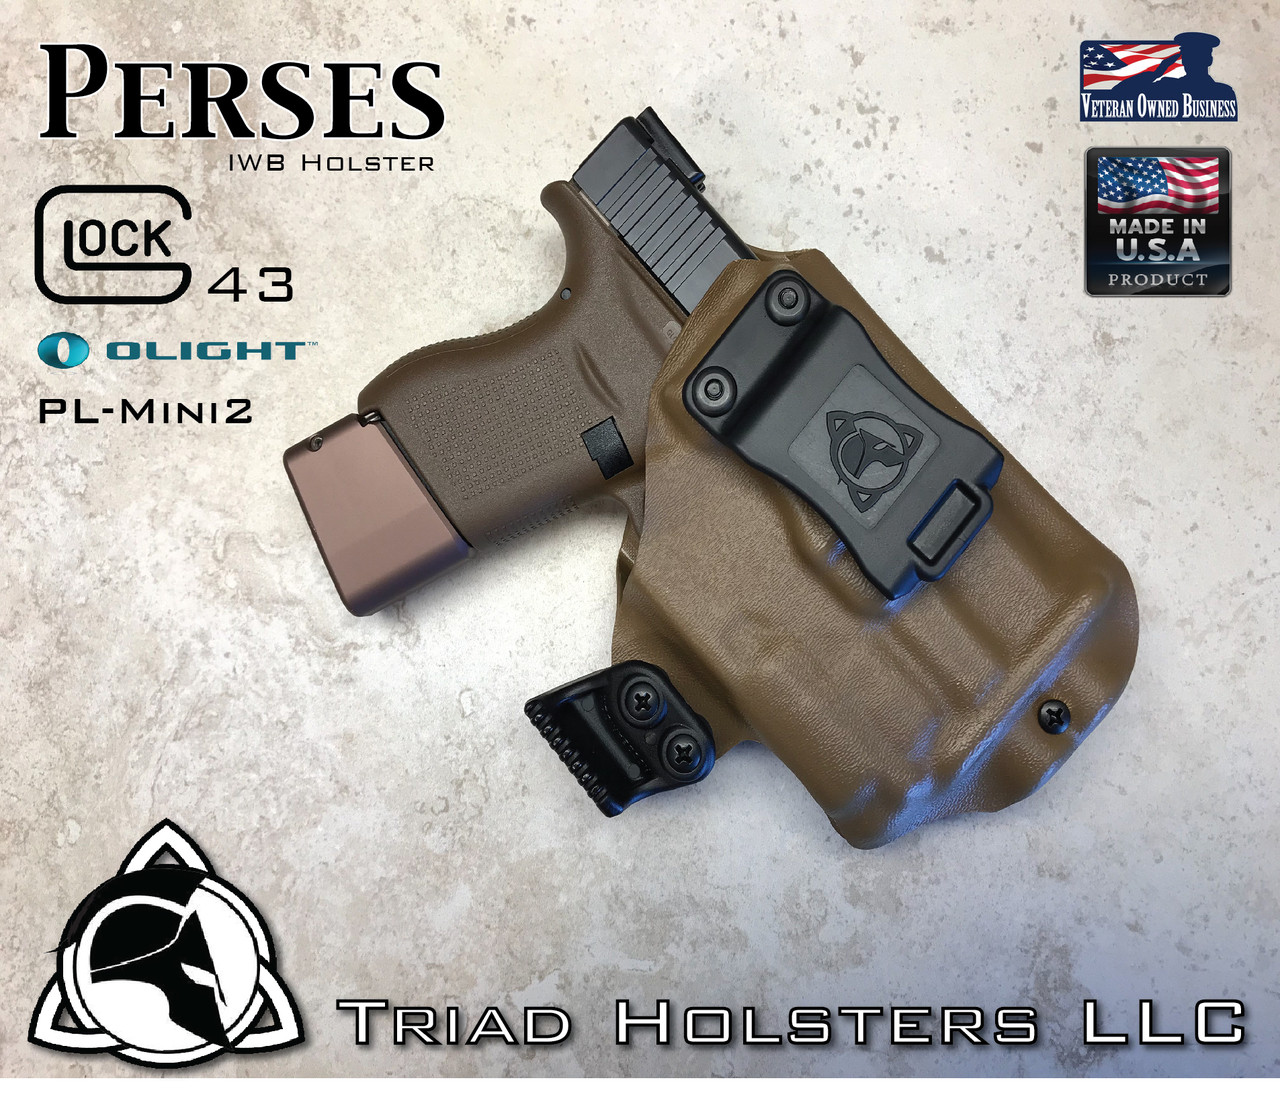 Kydex Holster Glock 43 and Olight PL-Mini2 Perses IWB Inside the Waistband